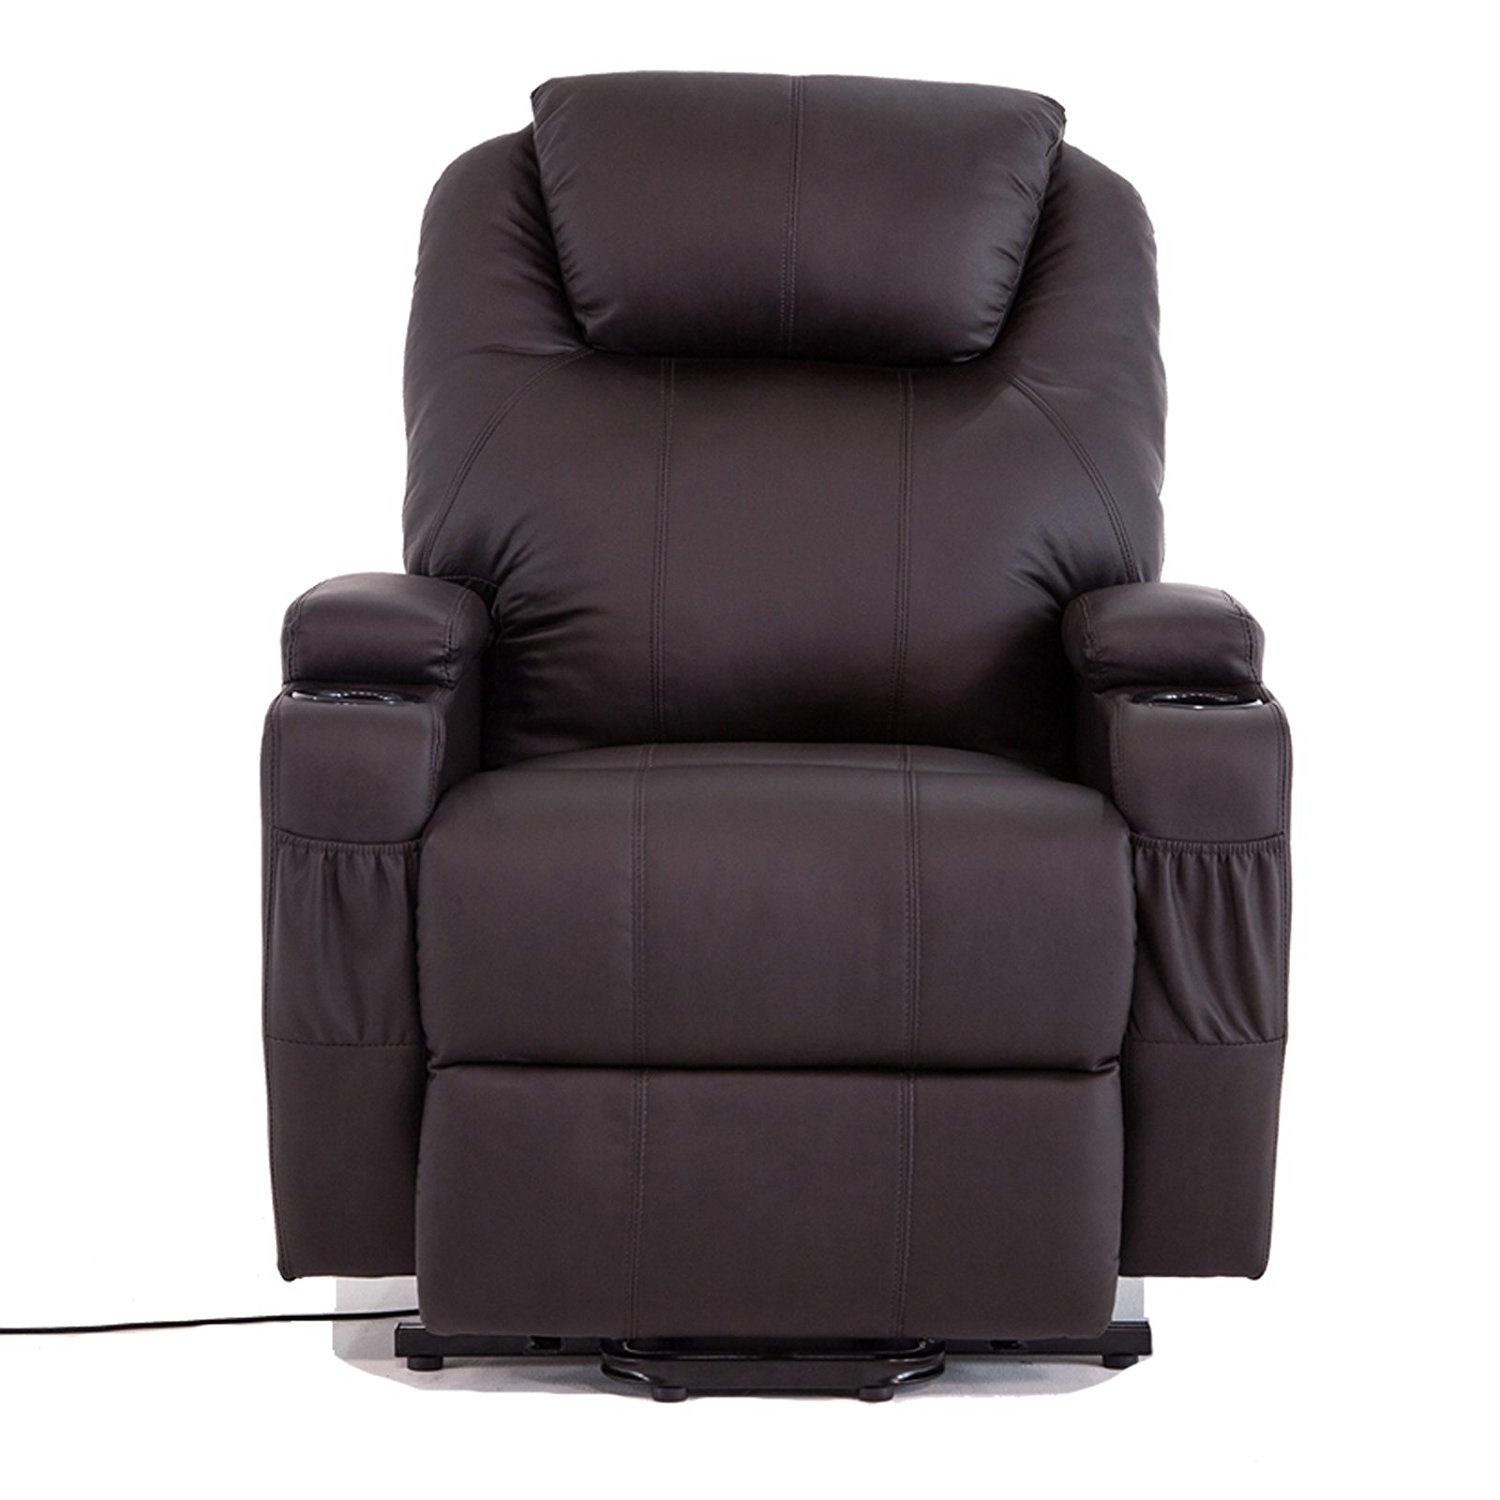 Lift Armchair Uenjoy Power Lift Chair Recliner Armchair Real Leather Wall Hugger Lounge Seat Brown